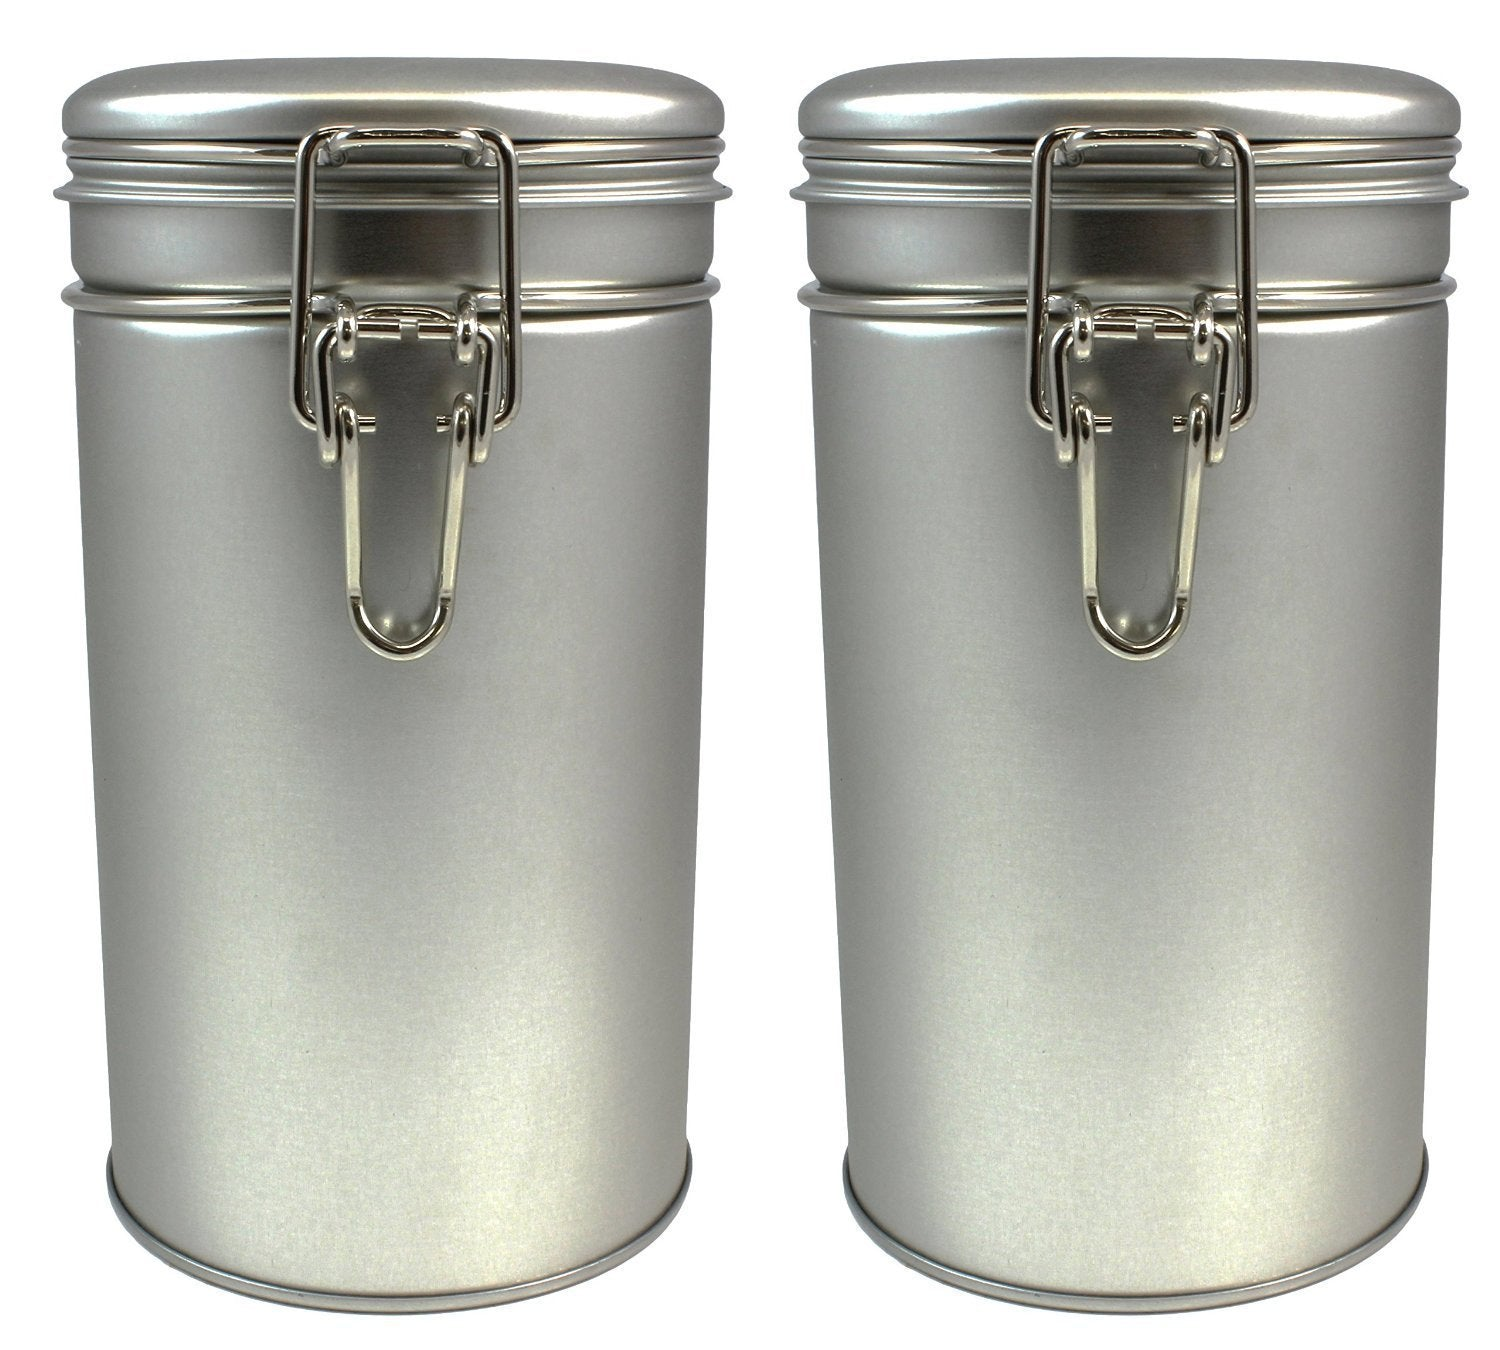 Air Tight Metallic Tea Containers